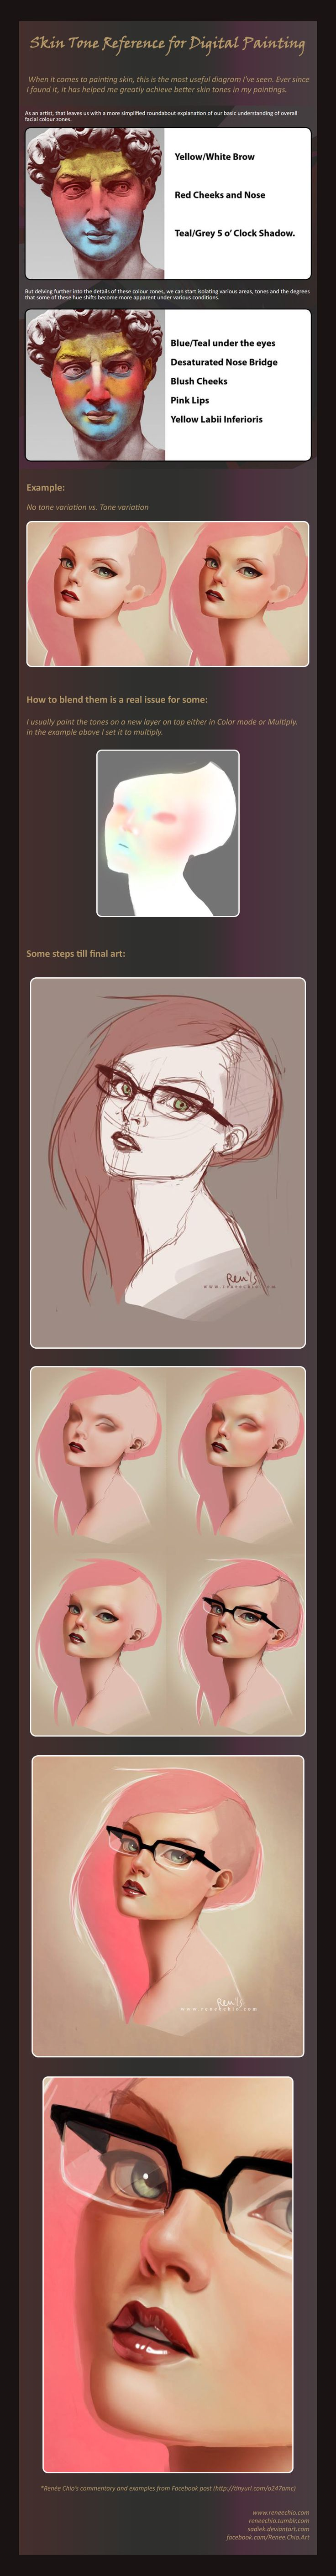 Skin Tone Reference for Digital Painting - Commentary by Renée Chio More